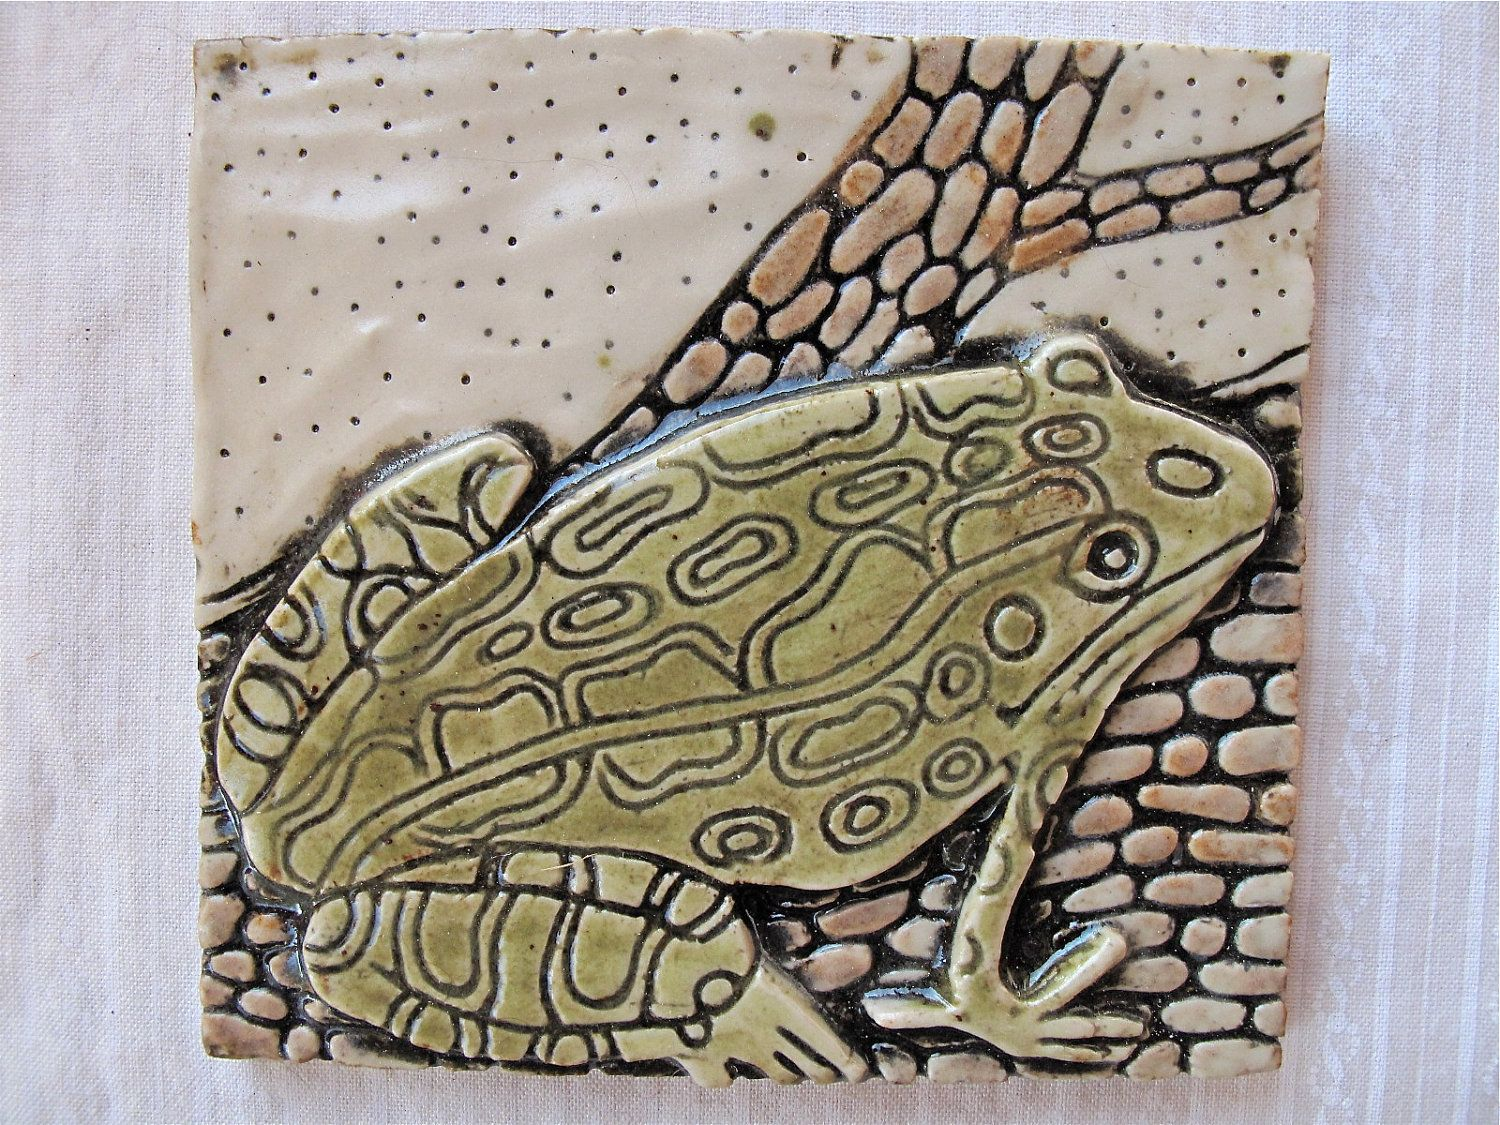 Keramikfliesen Selber Machen Carved Ceramic Tiles Ton Tipps And Tricks Pinterest